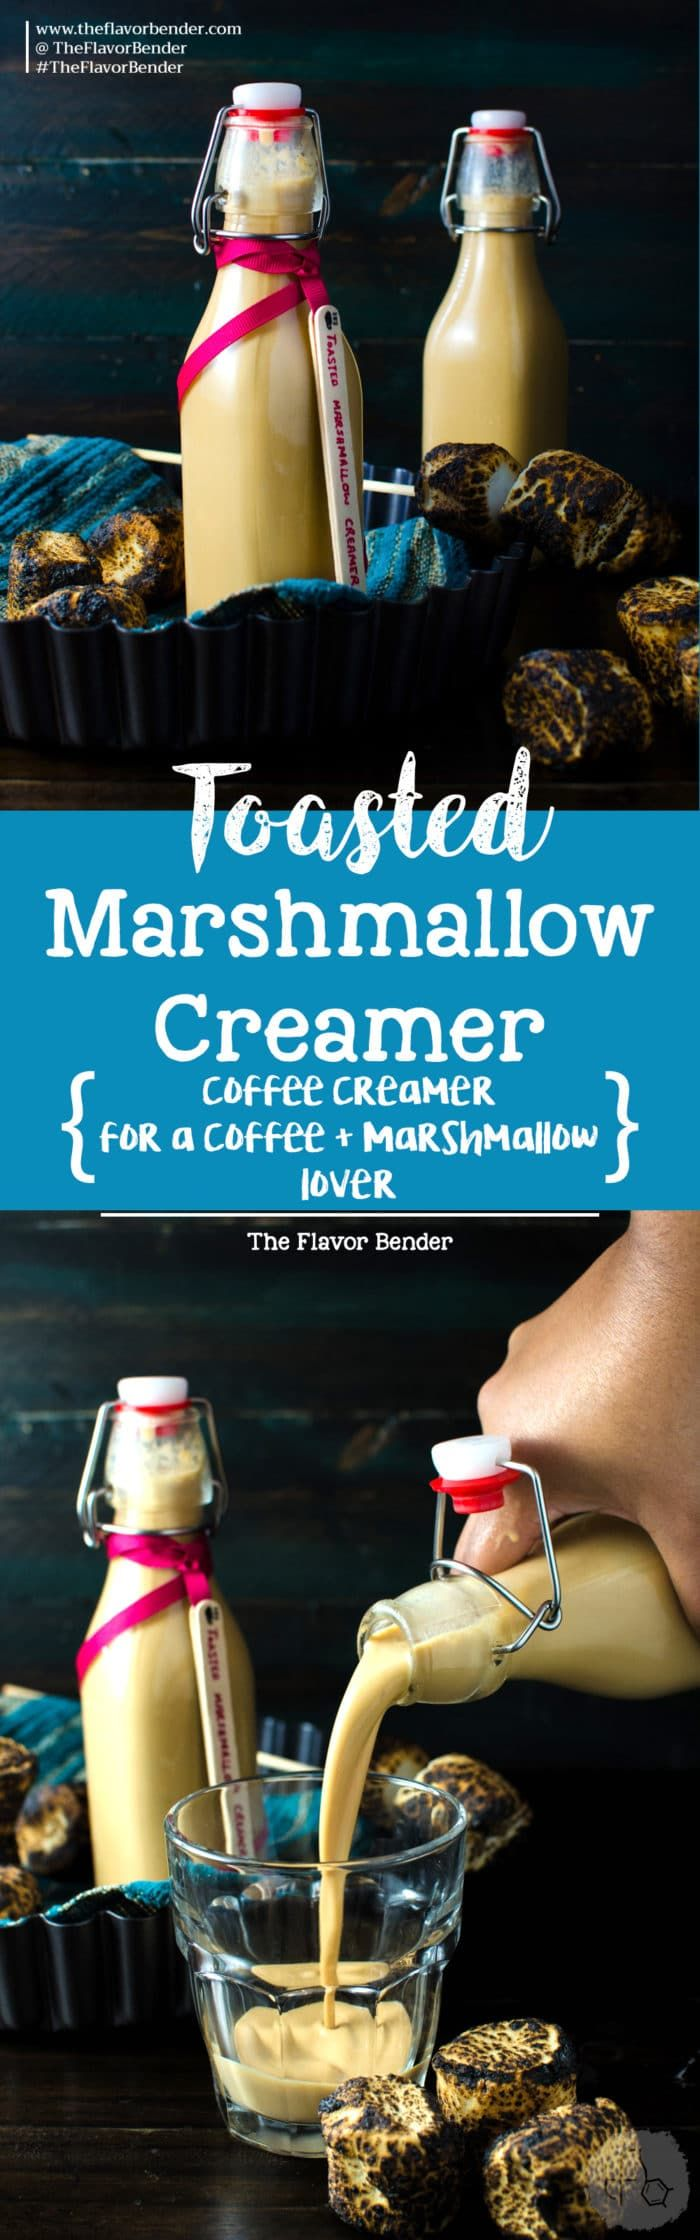 Toasted Marshmallow Creamer For Your Coffee (DF friendly Coffee Creamer) | The Flavor Bender